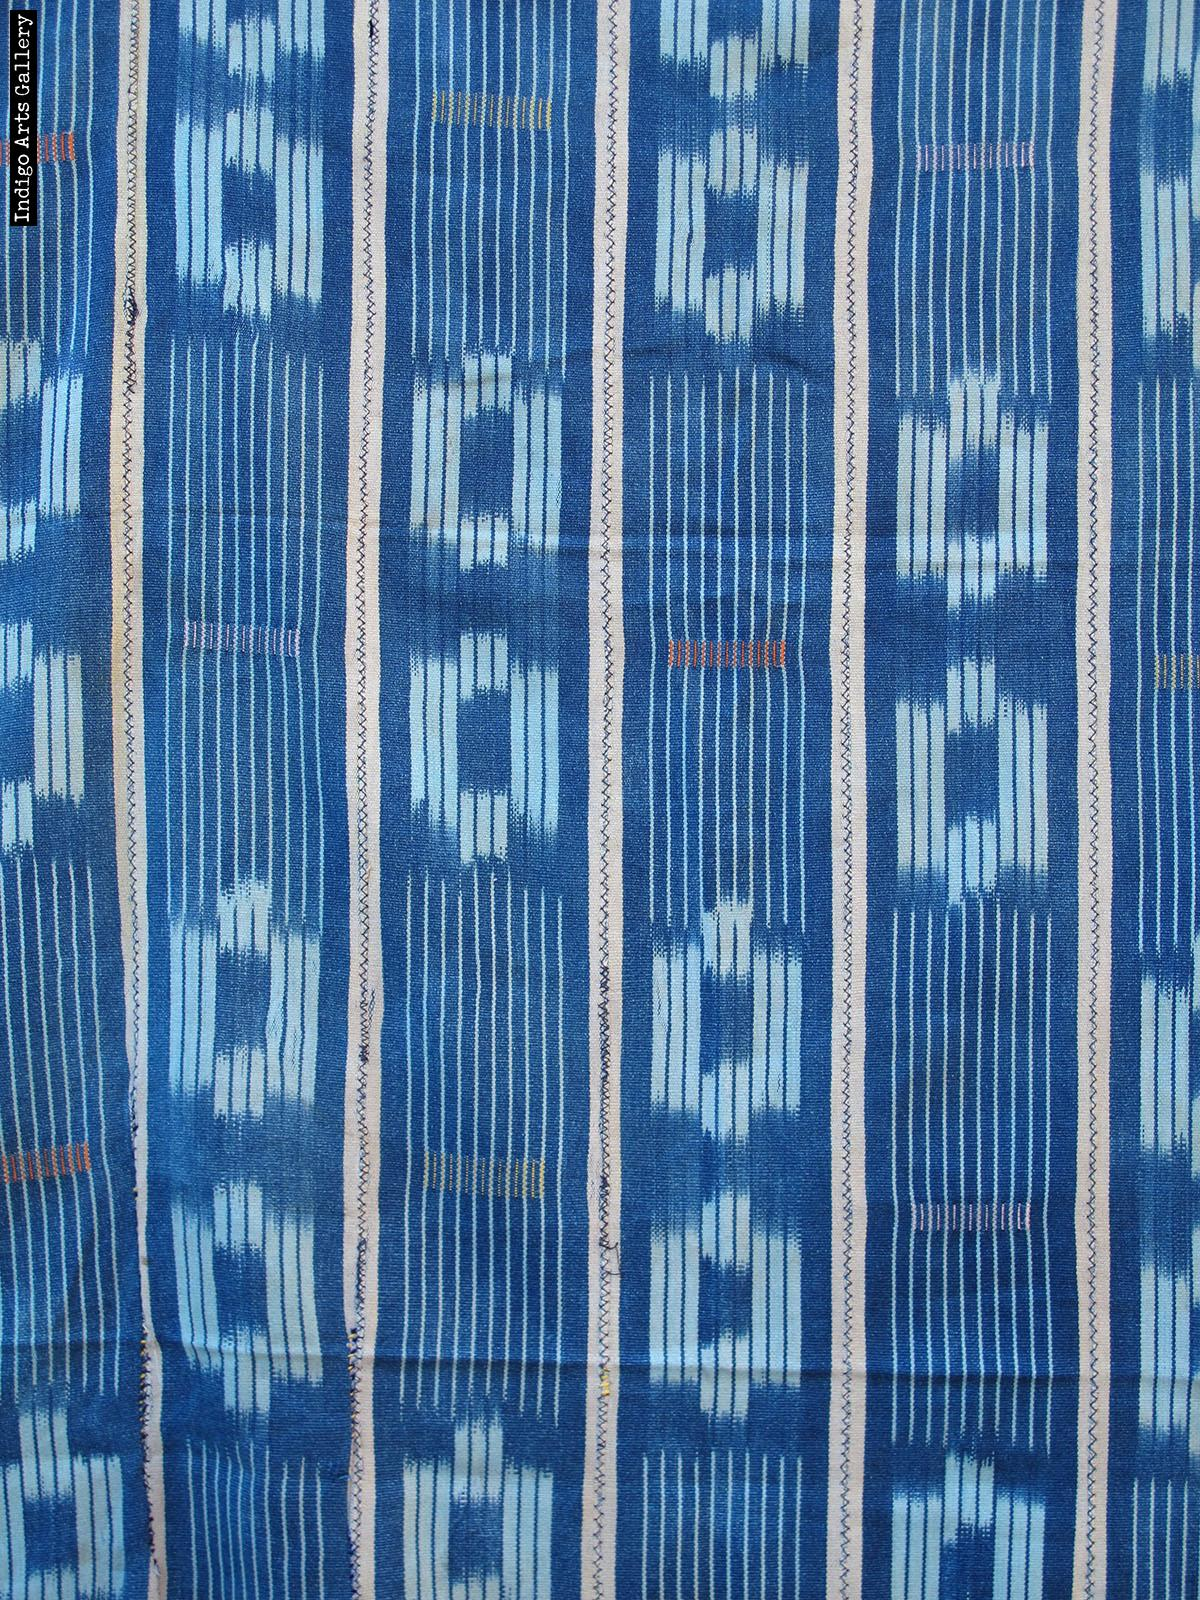 Baule Indigo Ikat Strip-weave Cotton Fabric Arts